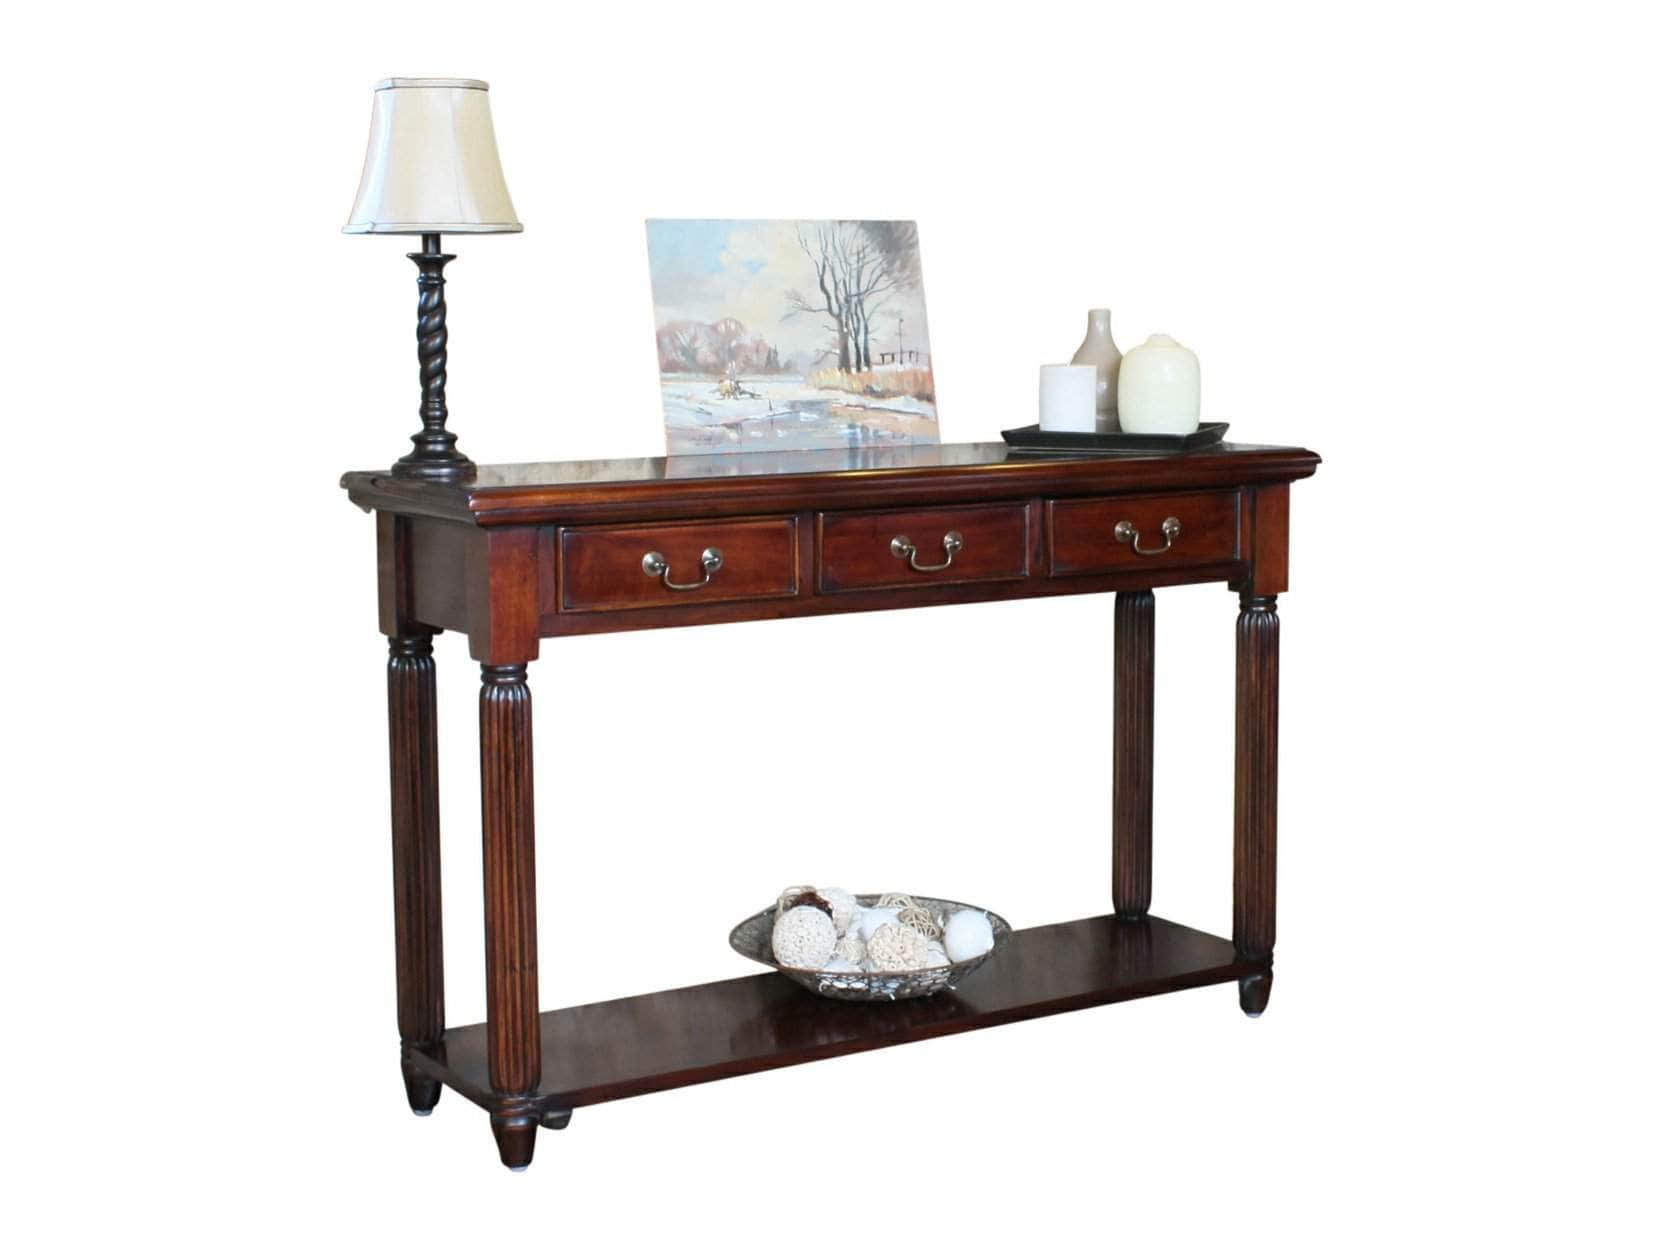 Mahogany hallway console table, featuring three small drawers for storage